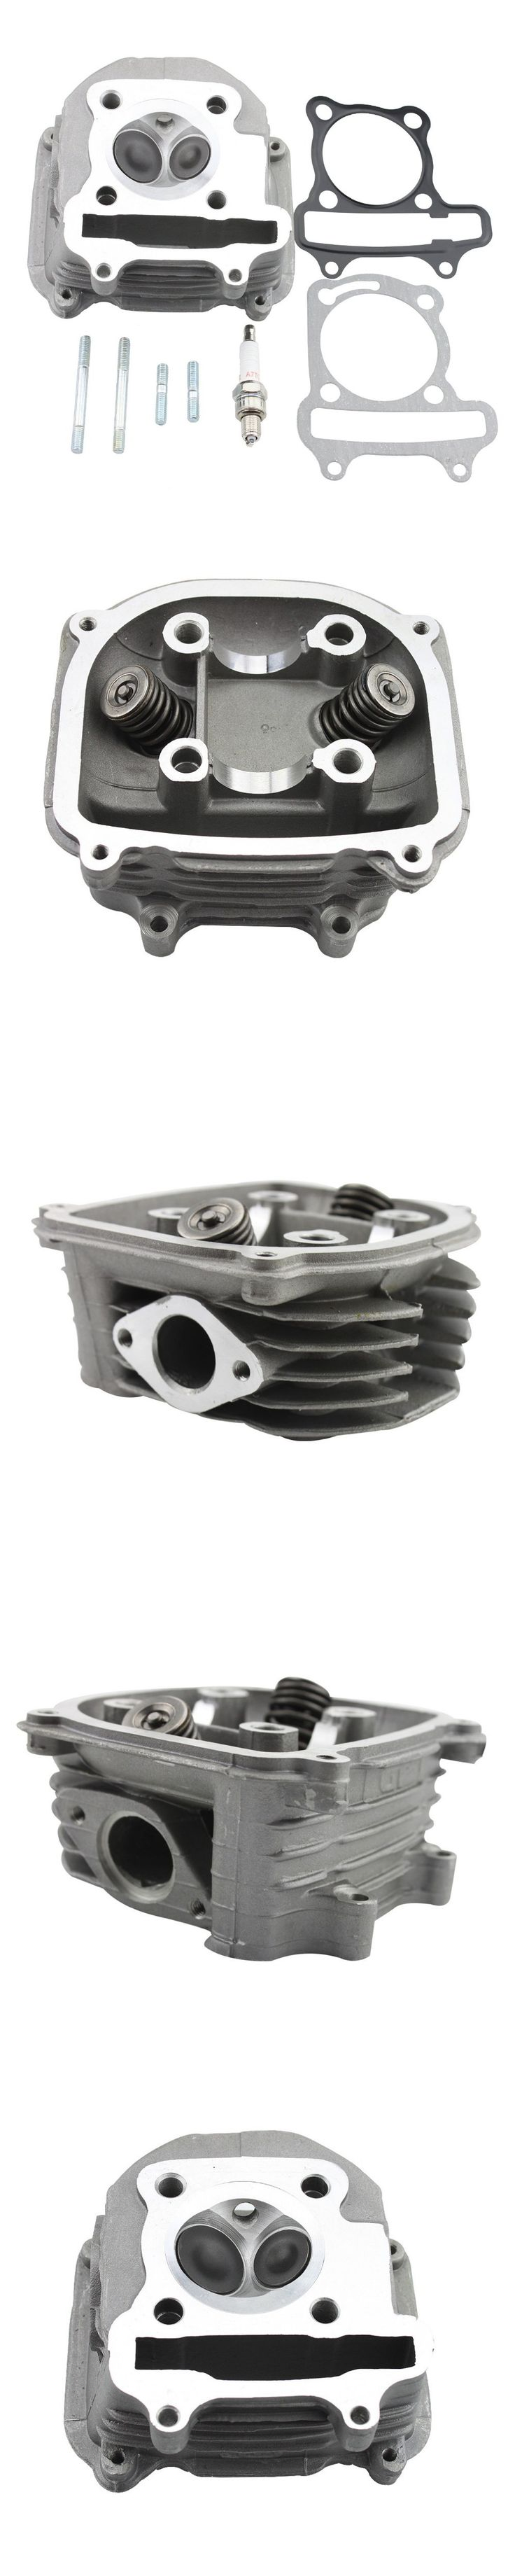 """GOOFIT Cylinder Head 2.5"""" tall 150cc GY6 Engine with Gasket part MOTORCYCLE ACCESSORY Group-20"""